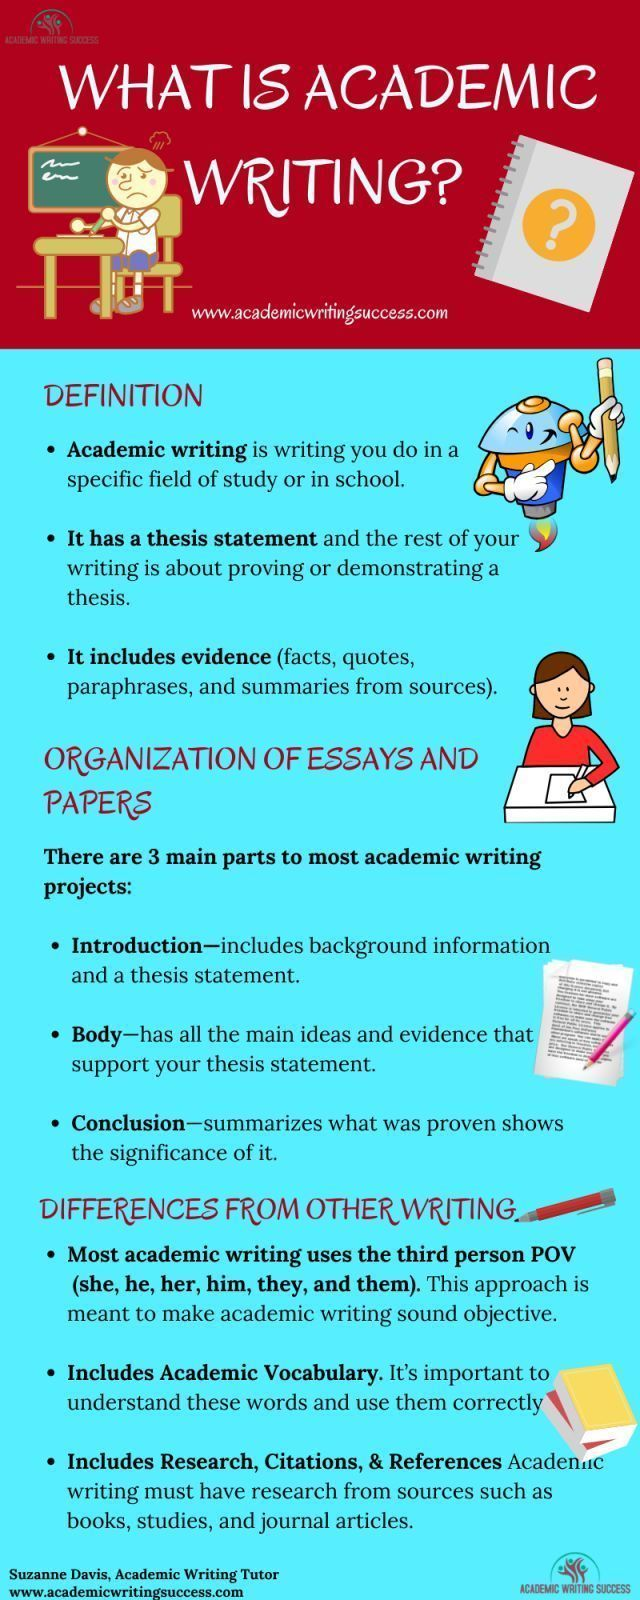 What Is Academic Writing What You Need To Know Academic Writing Success Academic Writing Essay Writing Help Essay Writing